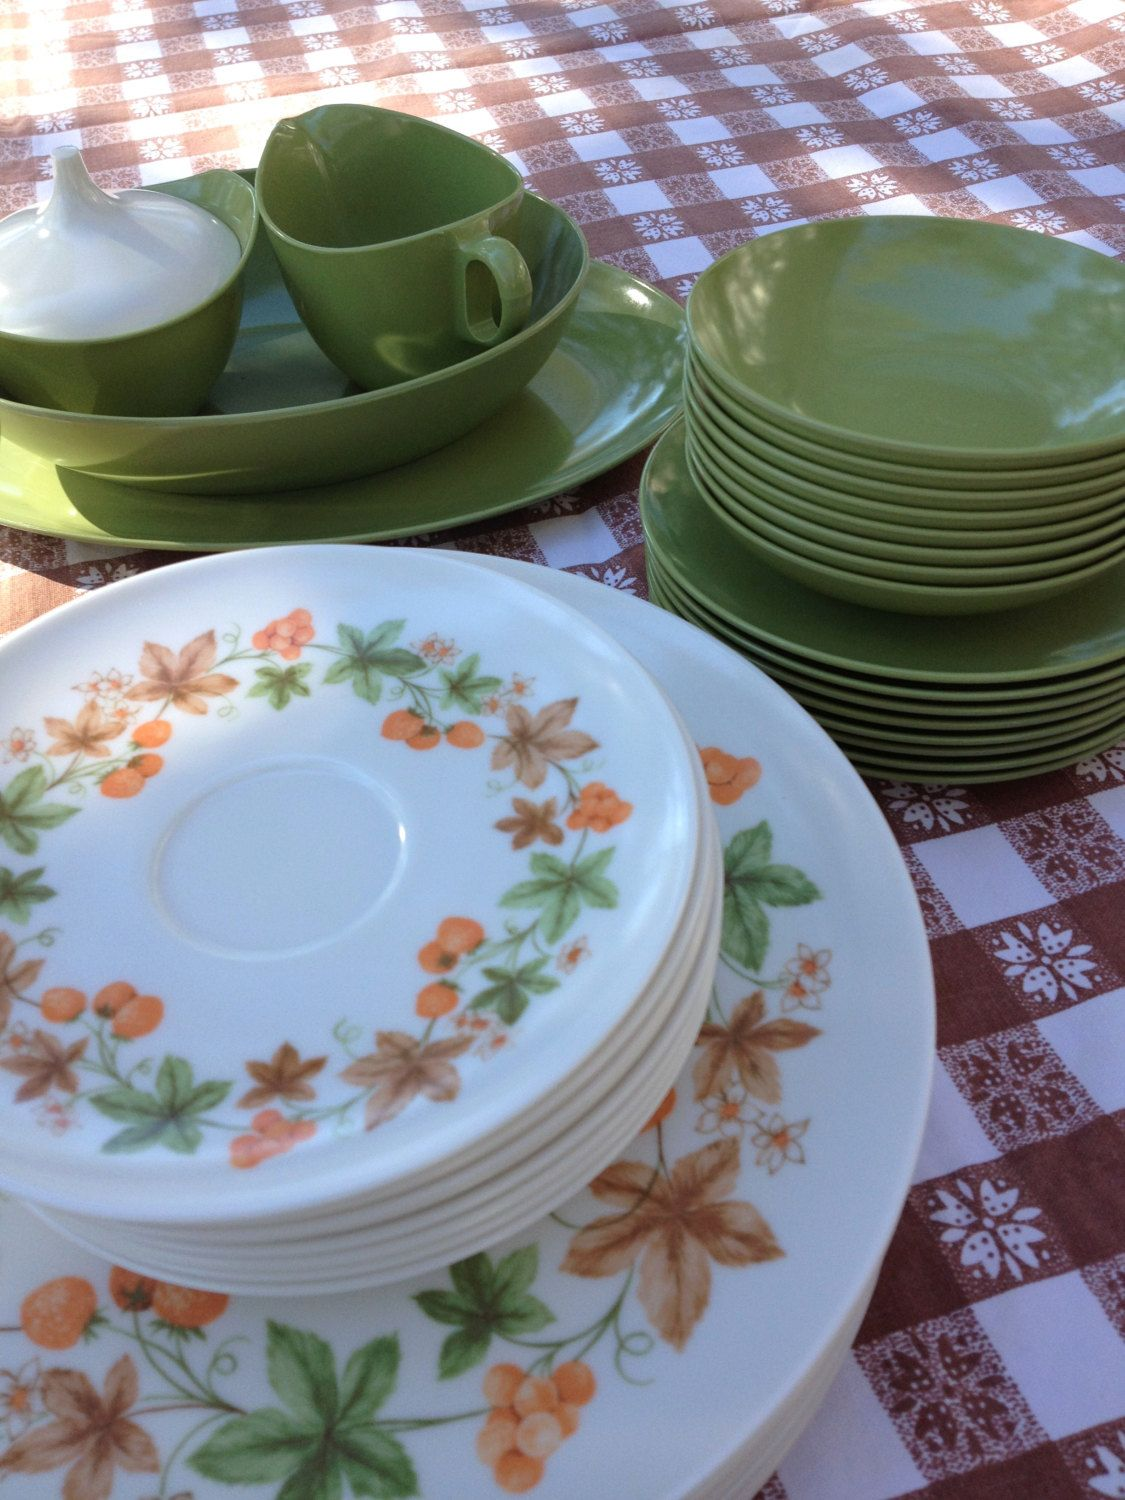 vintage oneida melamine dishes collection of 44 pieces marked od avocado and orange1960s kitchen - Melamine Dishes